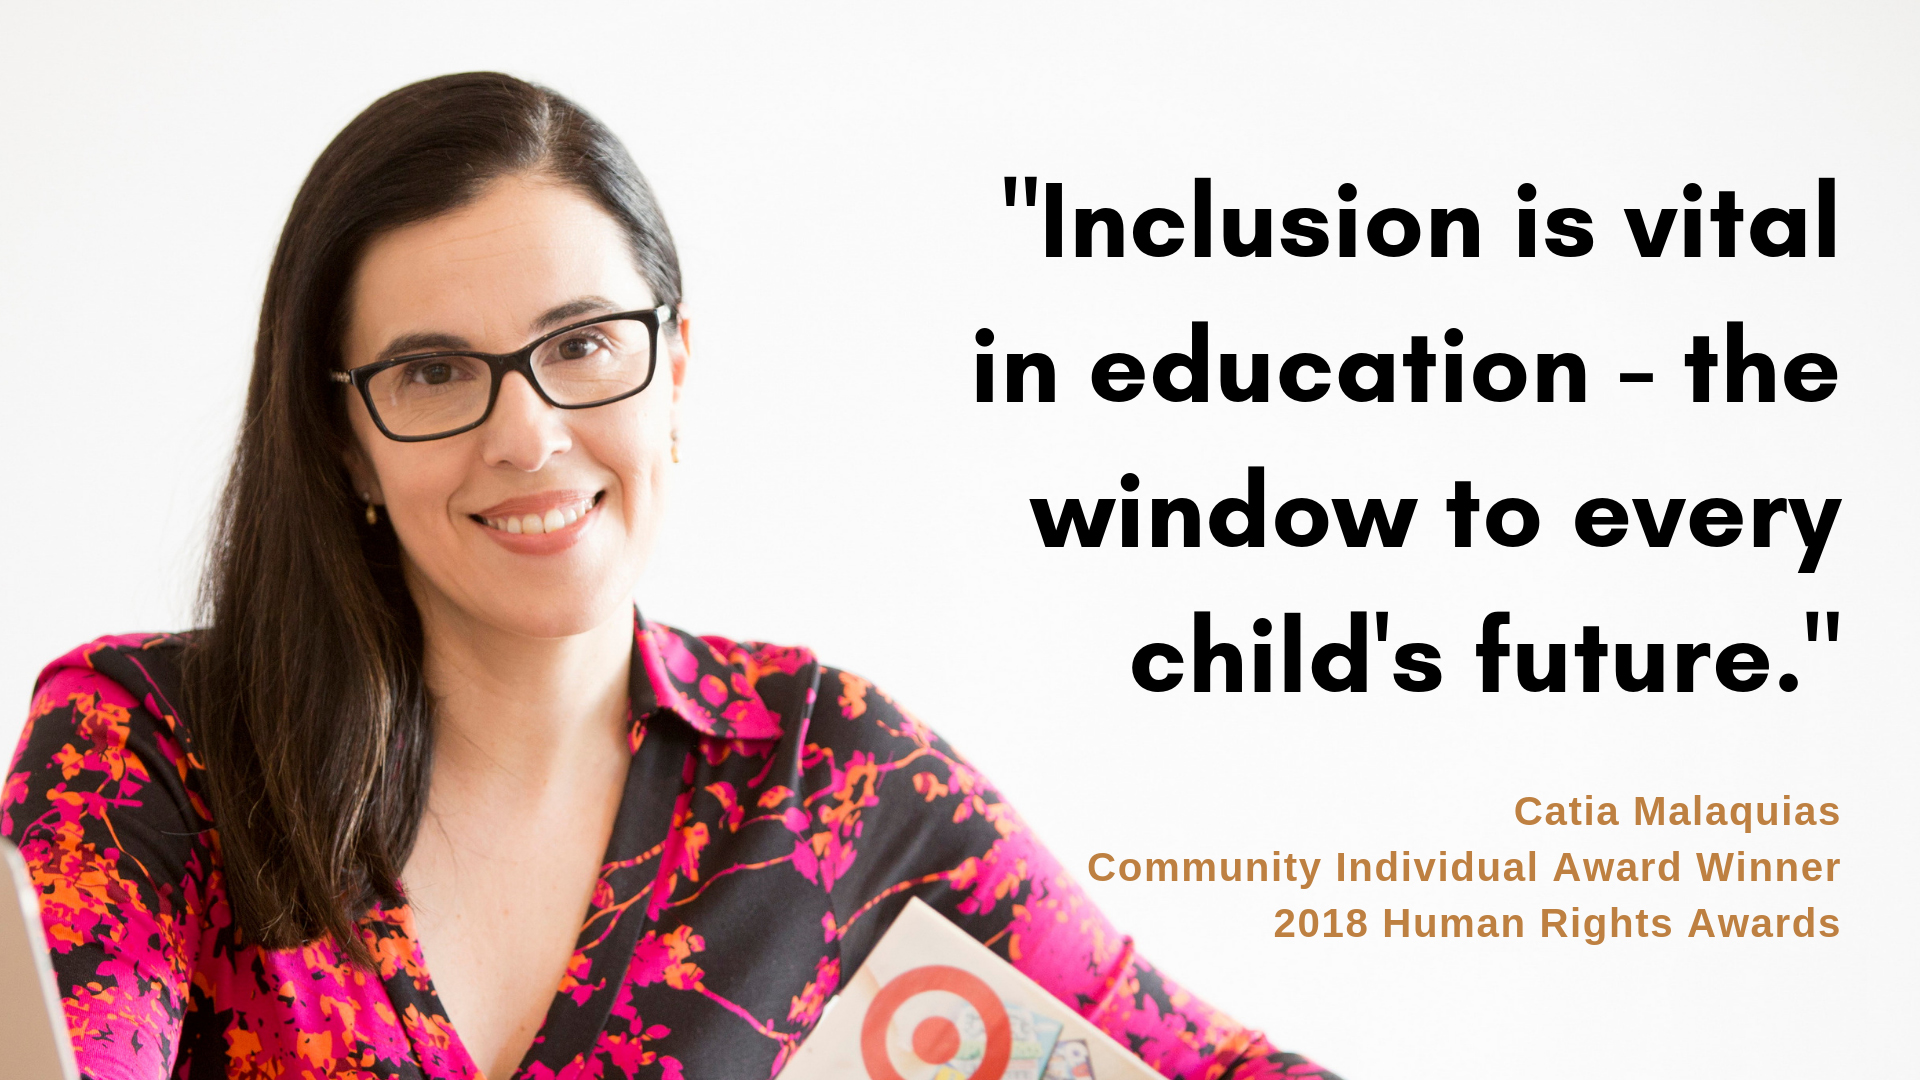 """inclusion is vital in education - the window to every child's future' - Catia Malaquias 2018 Winner"